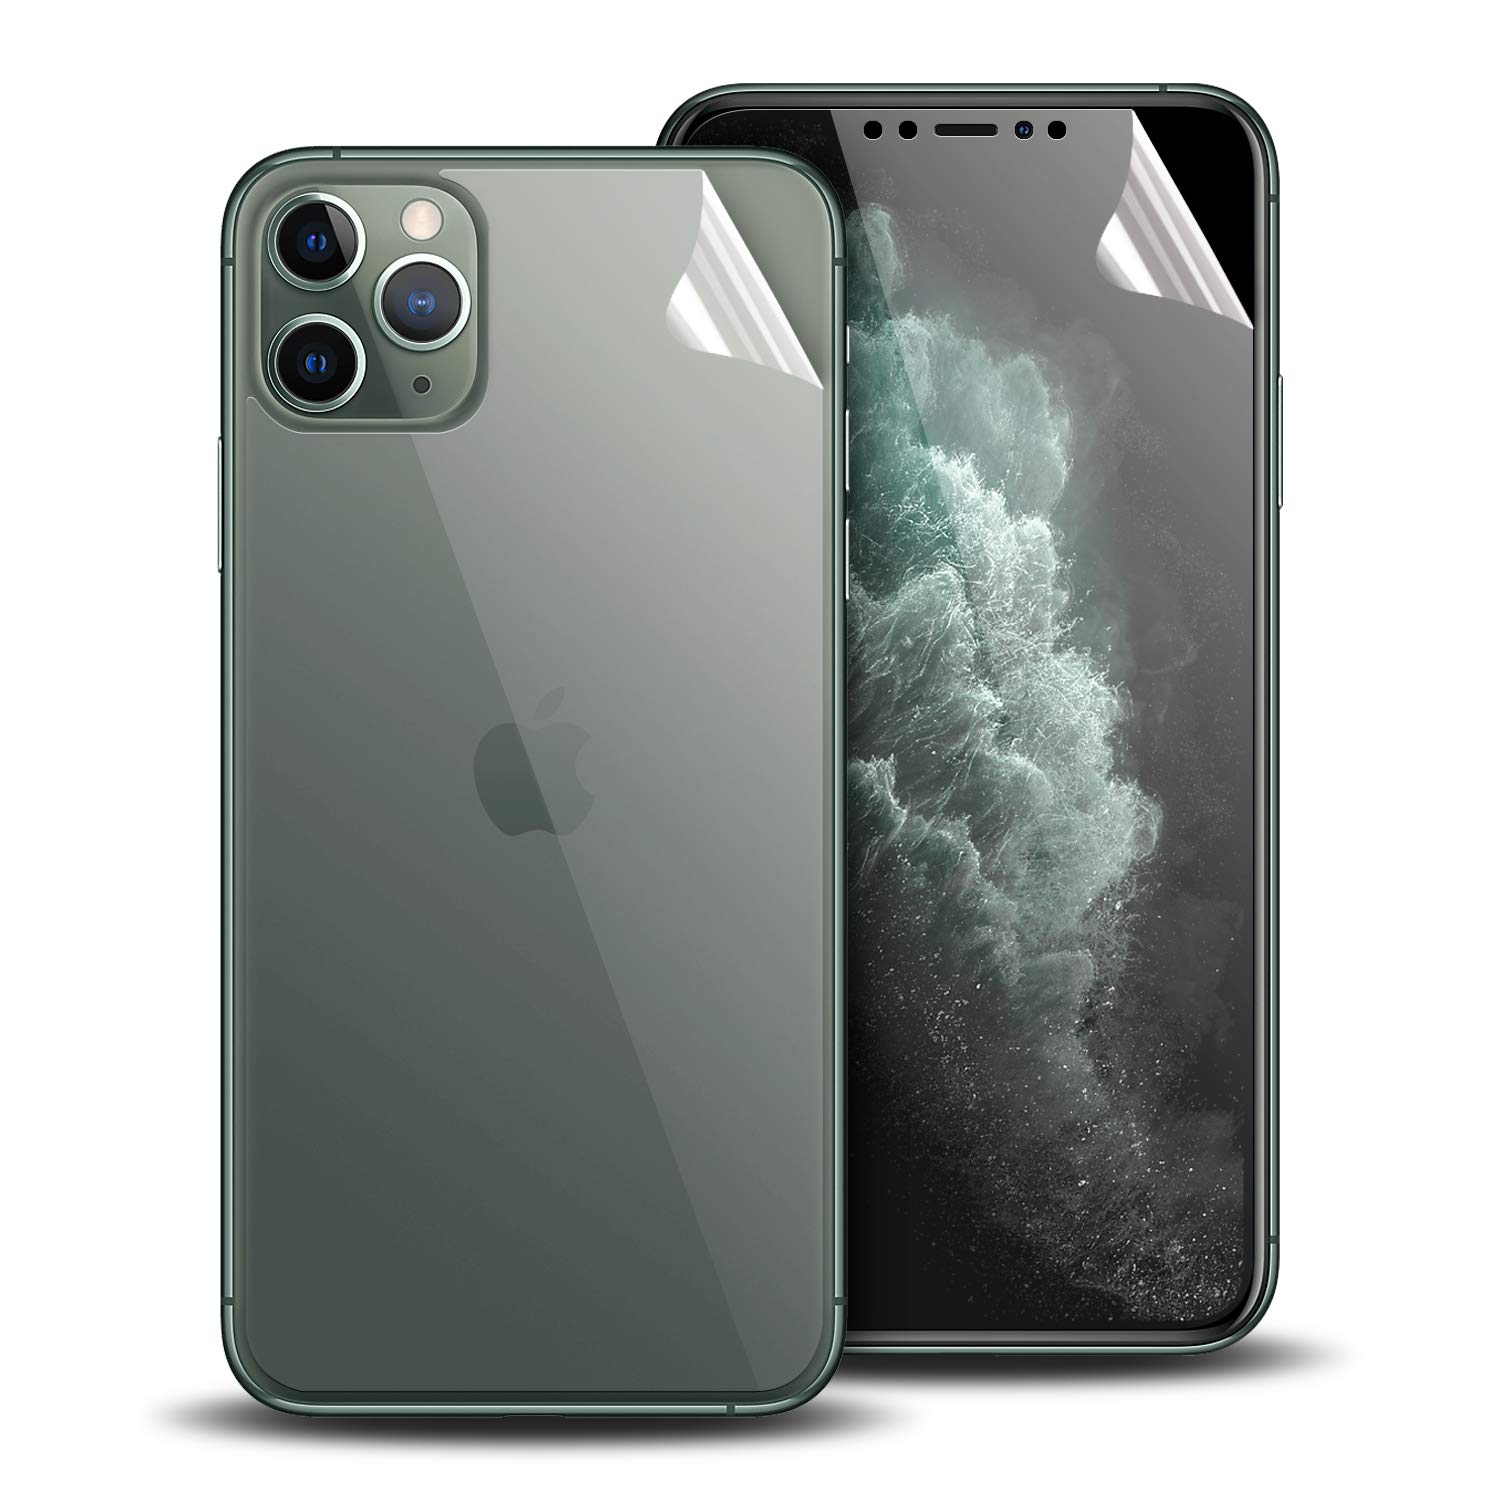 Olixar for iPhone 11 Pro Max Front and Back Screen Protectors - Case Friendly Protection - TPU Design - Easy Application - for iPhone 11 Pro Max